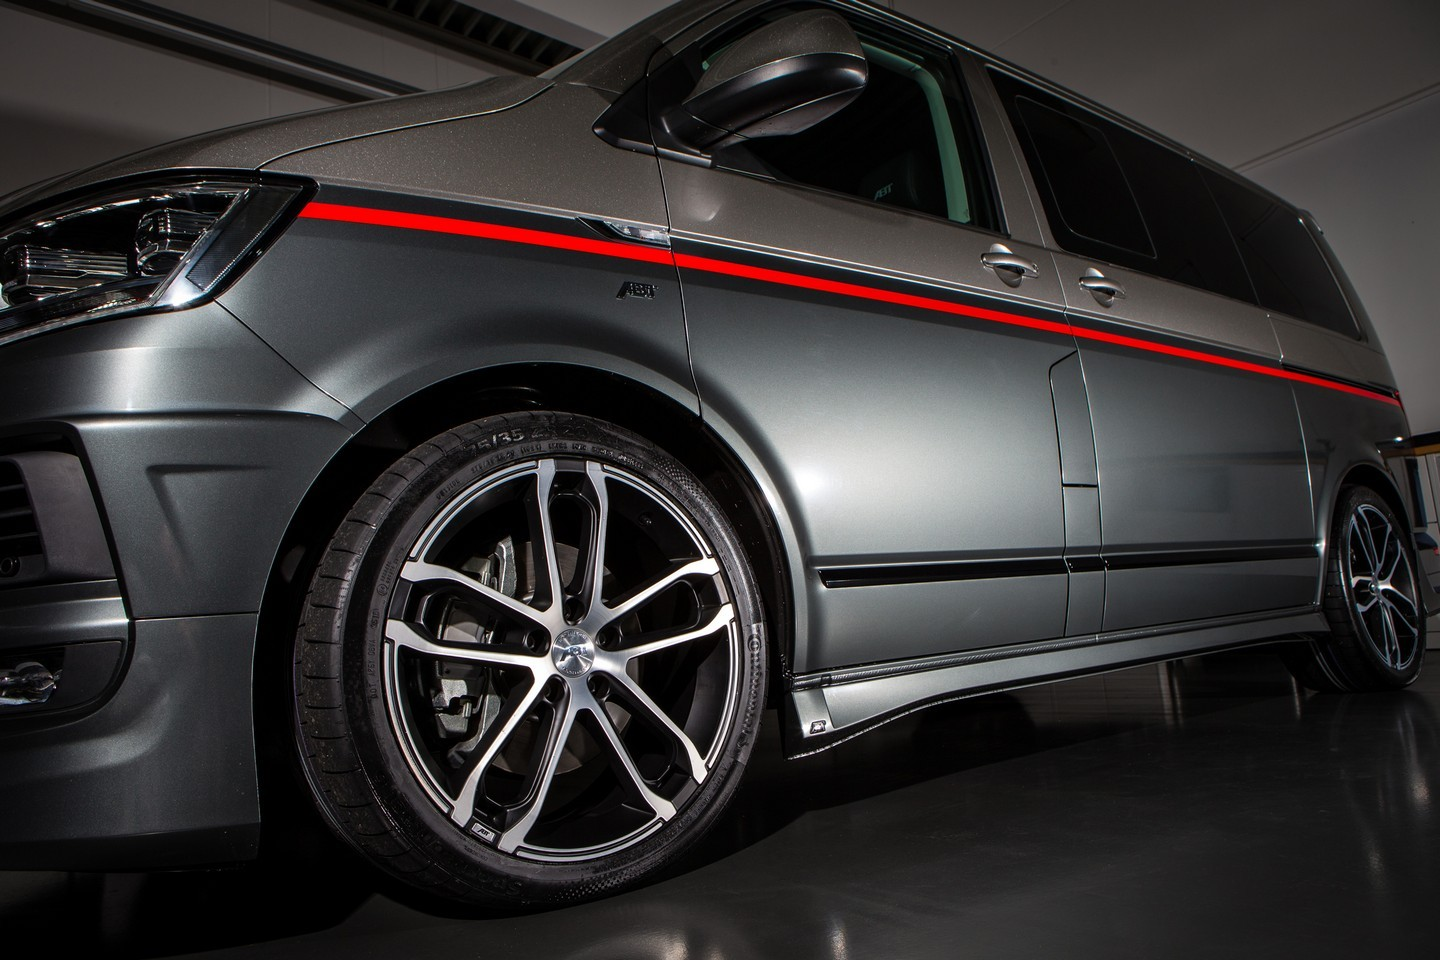 ABT Makes Coolest Volkswagen T6 Tuning Project for Geneva - autoevolution